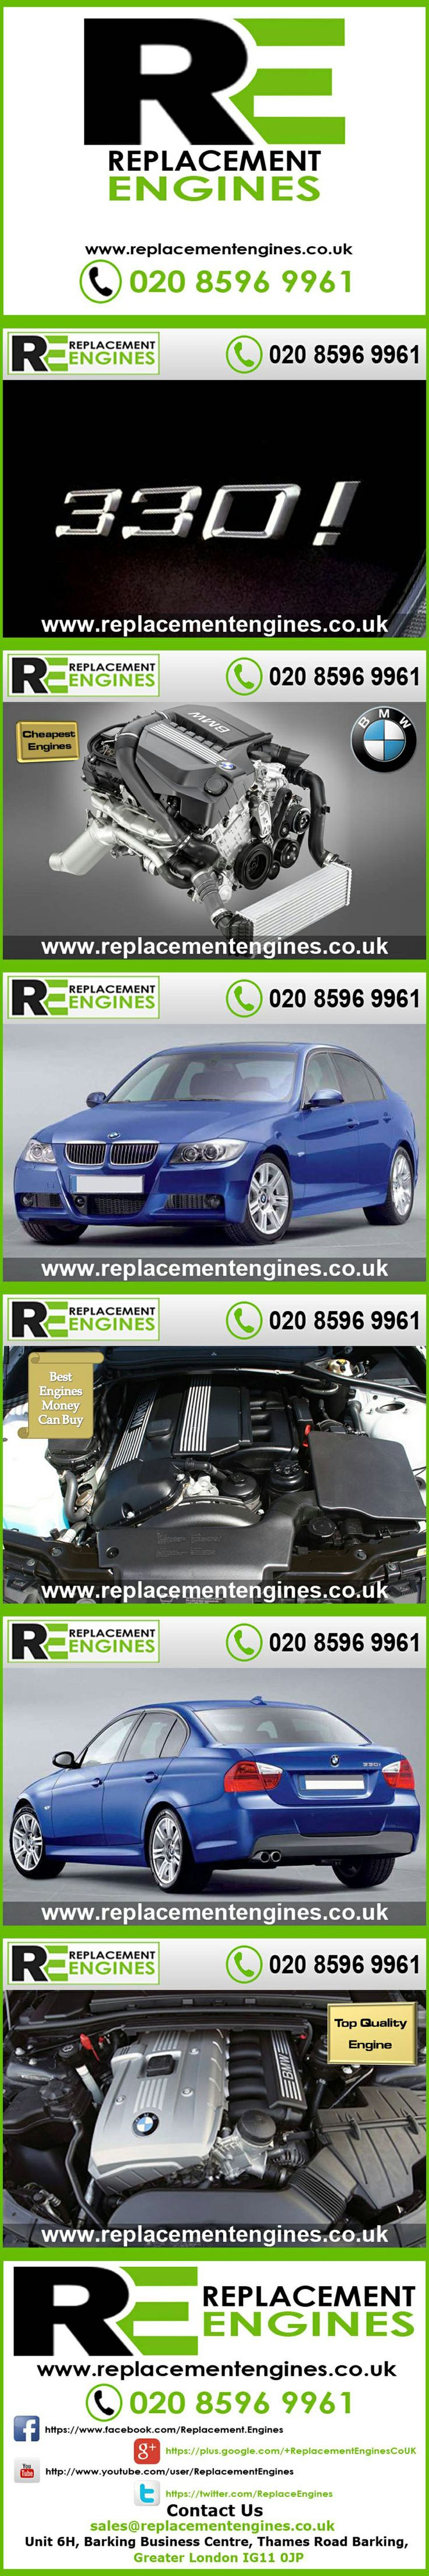 BMW 330i engines for sale at the cheapest prices, we have low mileage used & reconditioned engines in stock now, ready to be delivered to anywhere in the UK or overseas, visit Replacement Engines website here.